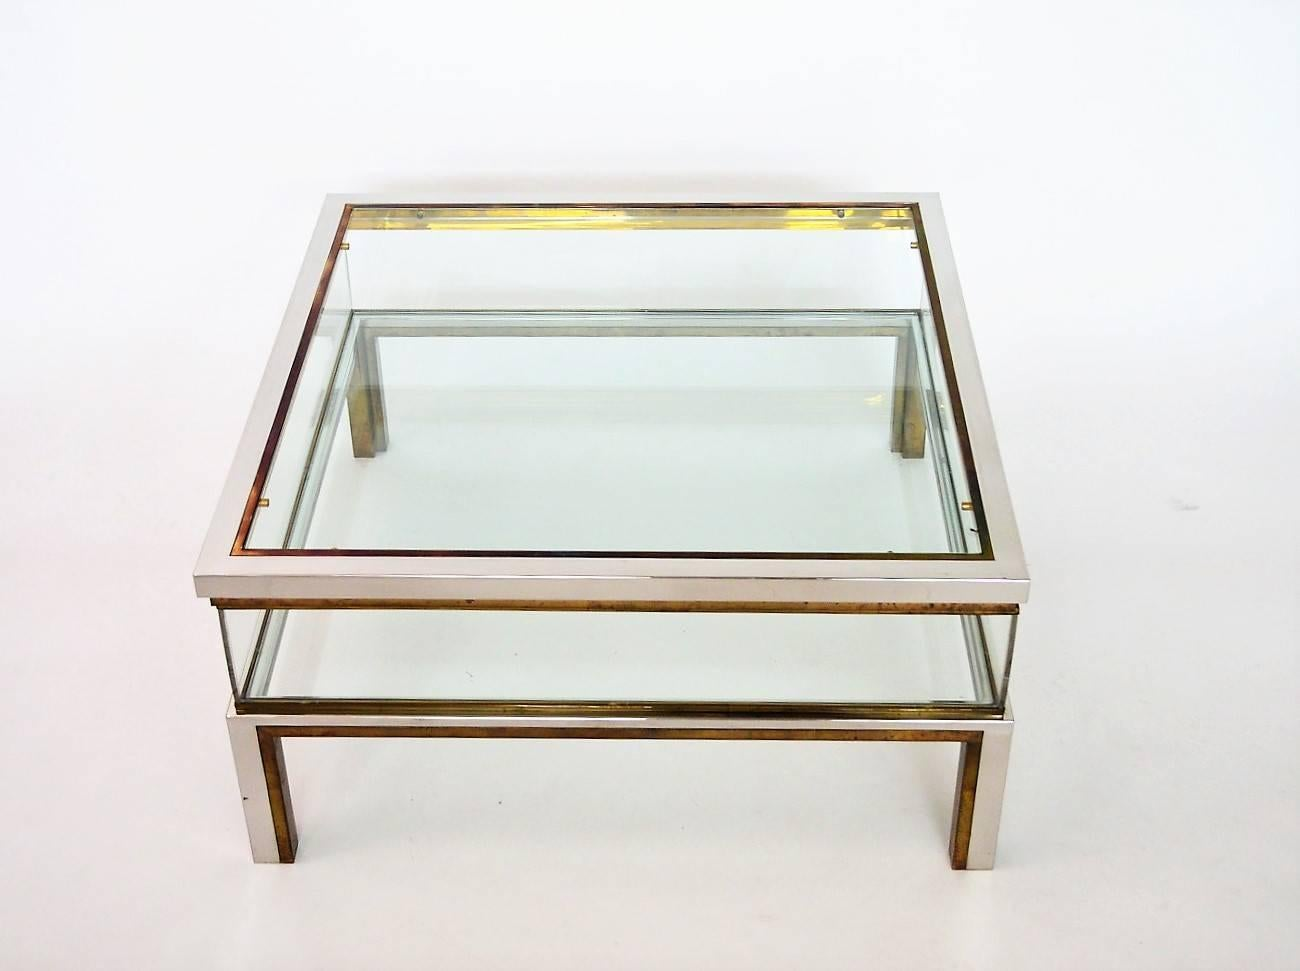 Very Elegant 1970s Regency Brass And Chrome Coffee Table With Internal  Sliding Display Case In Order